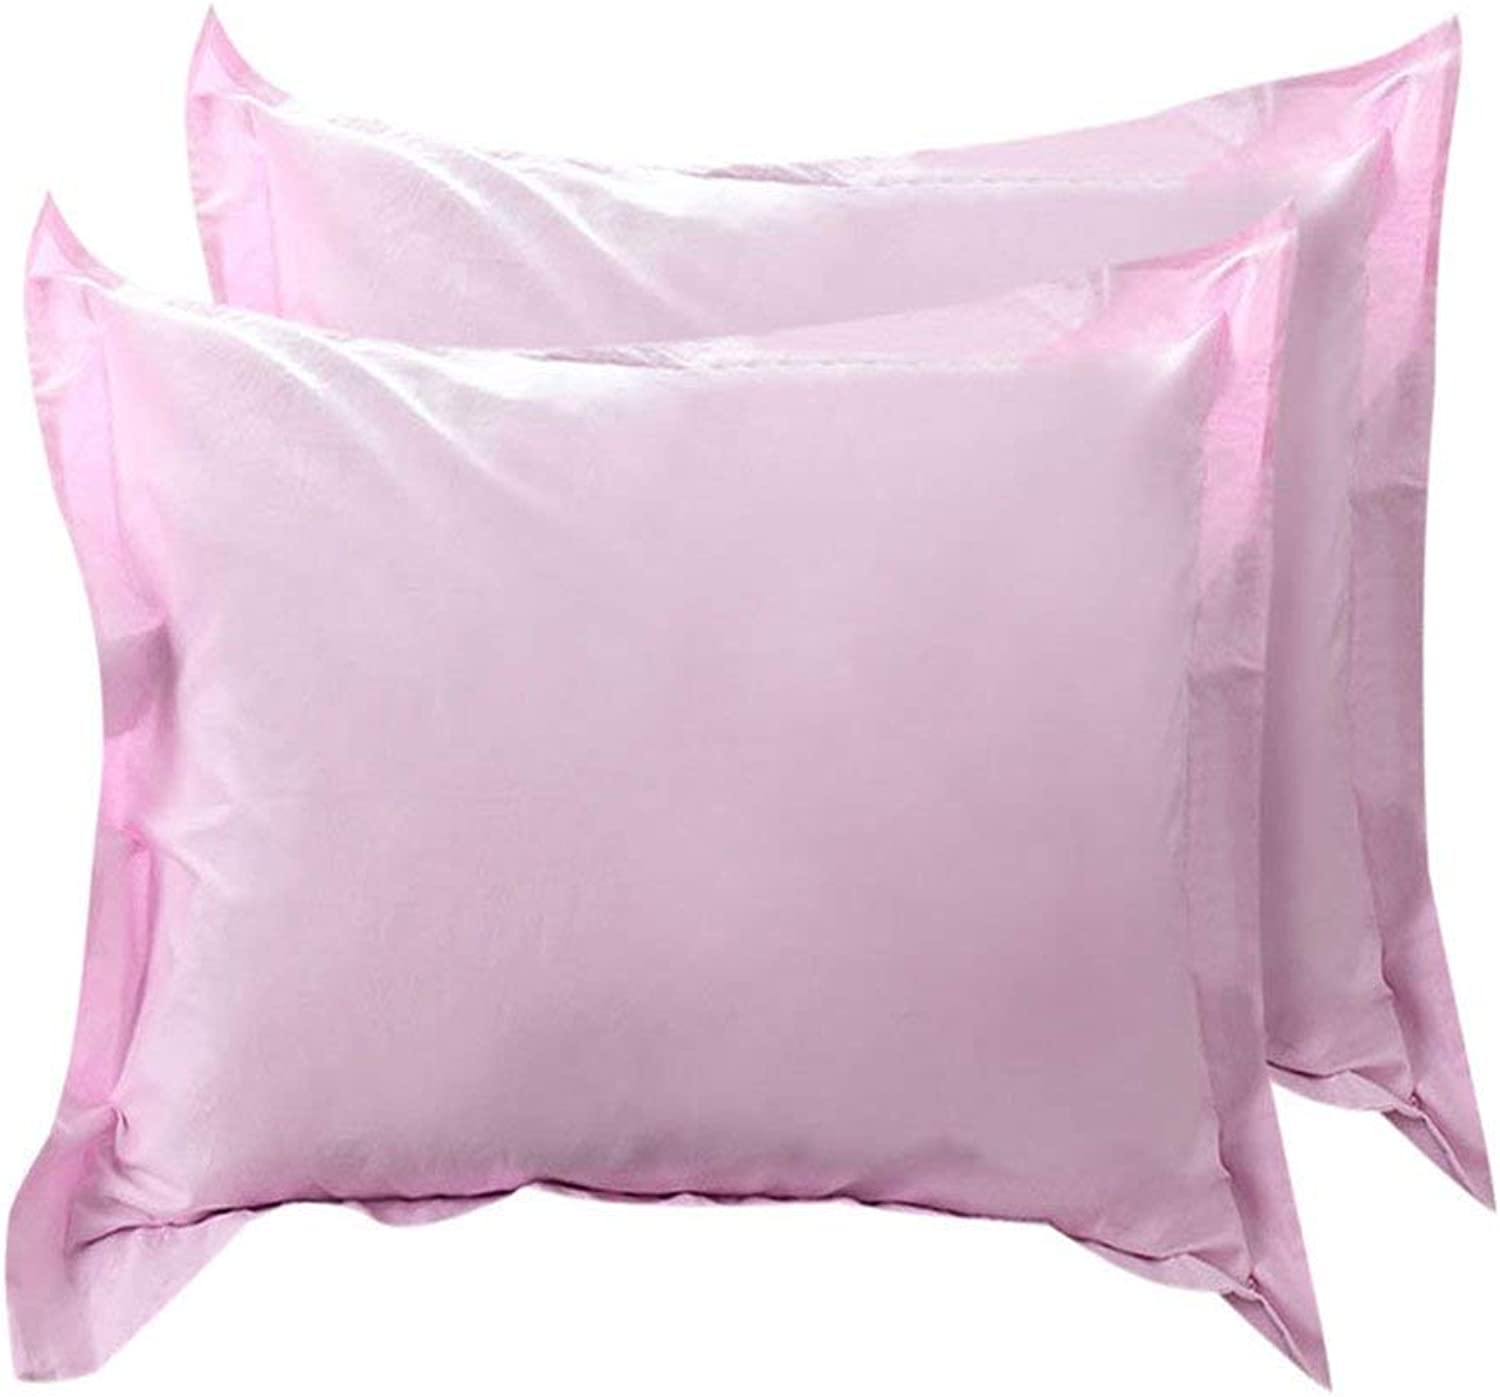 18\ x 18\, Pink   Pillow Shams Oxford Pillow Cases Egyptian Cotton 300 Thread Count Solid Plain Pattern Pink 18 x 18 Inch Set of 2